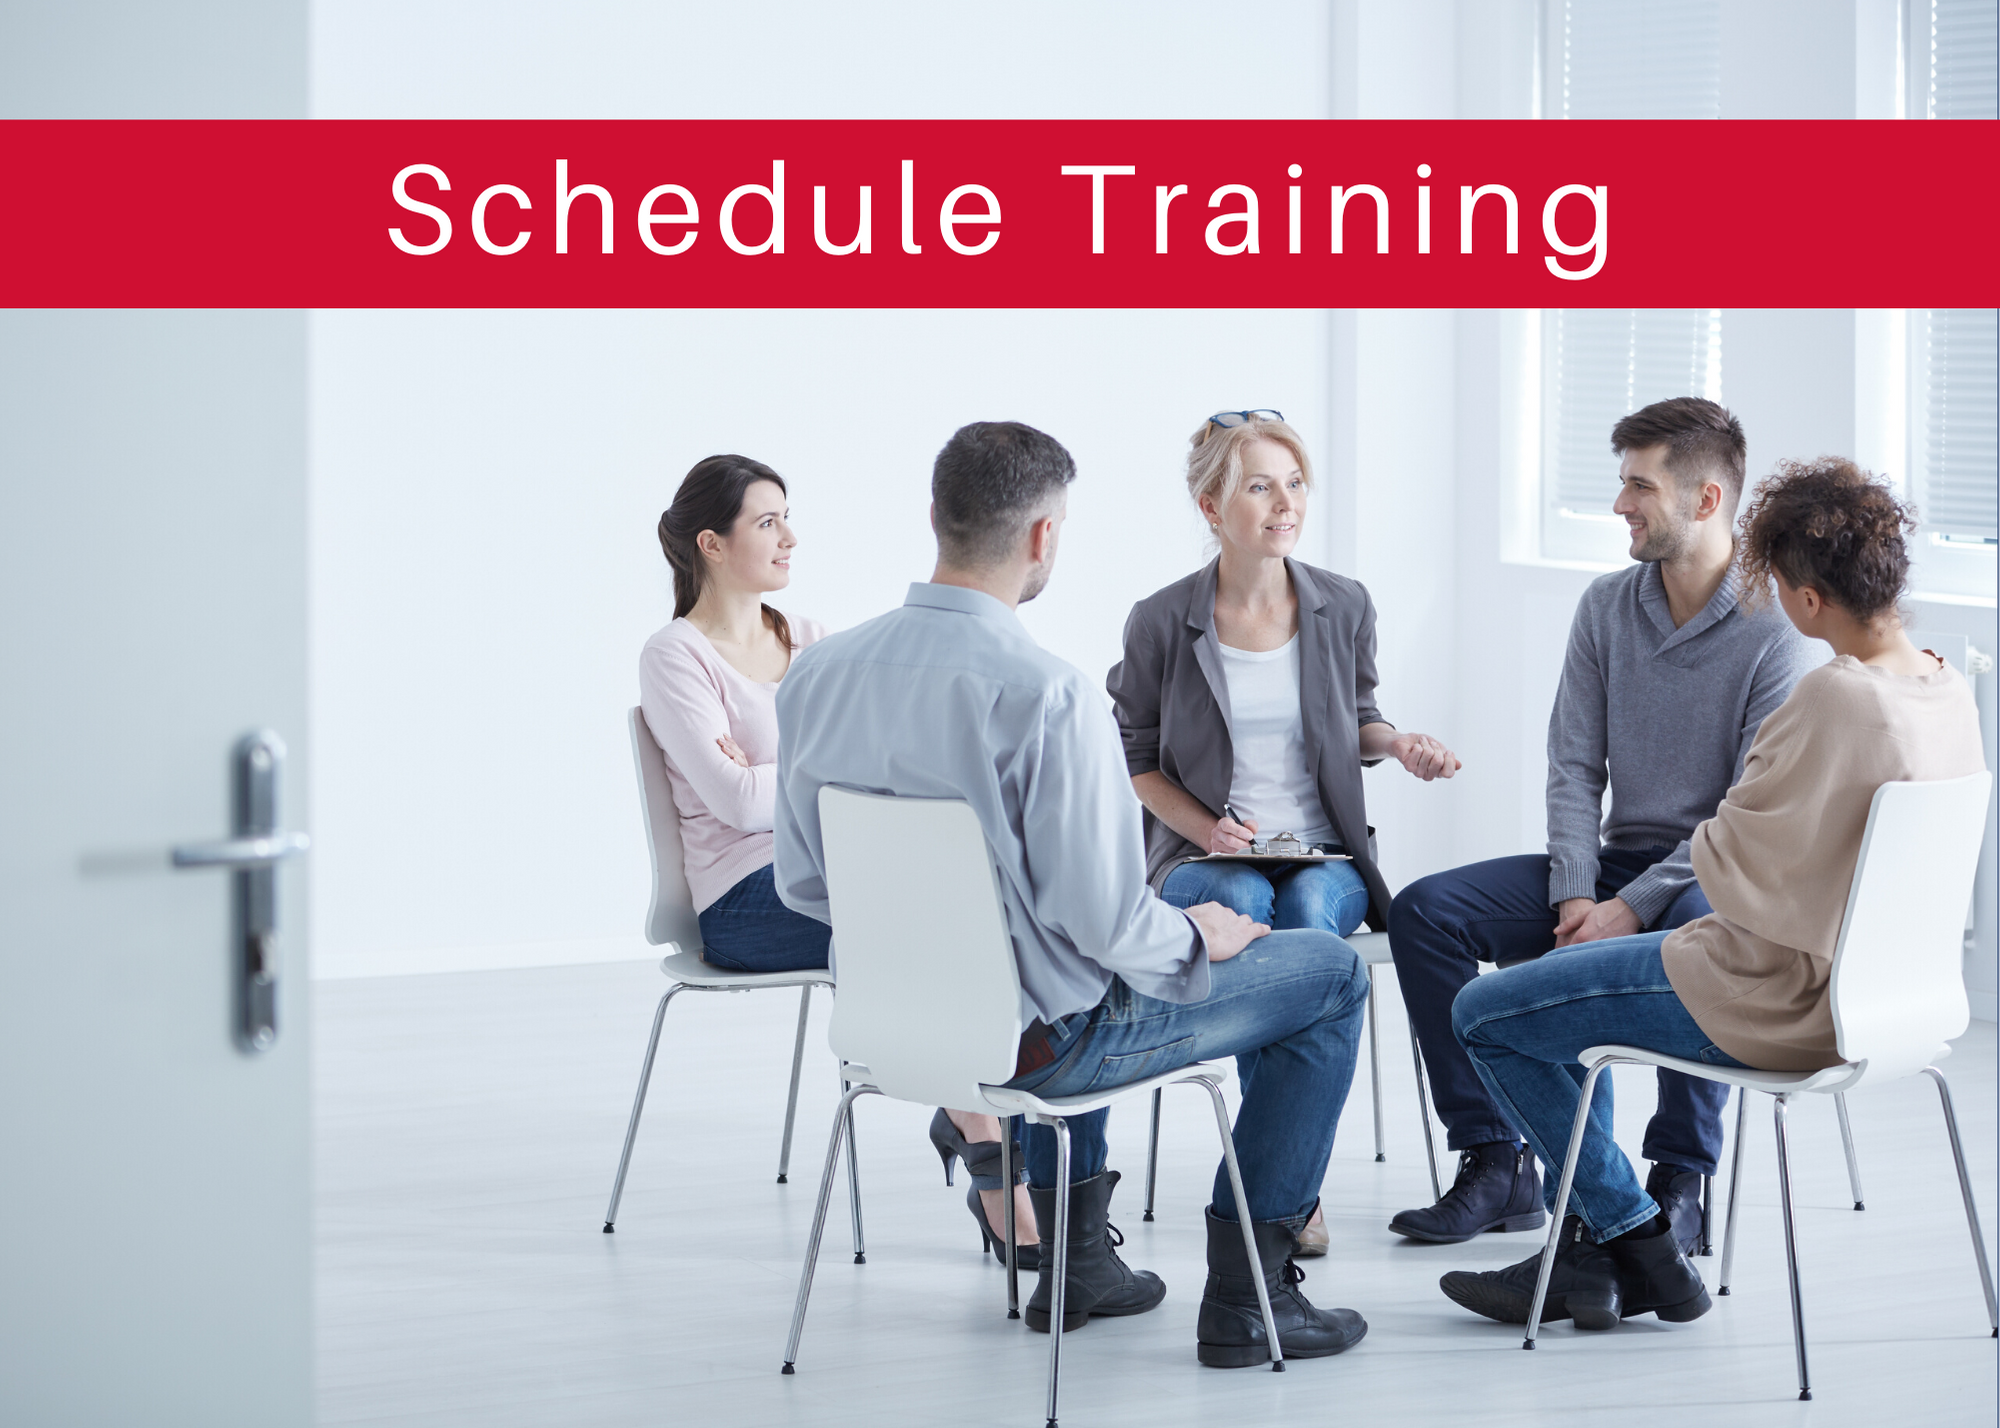 Schedule training - people sitting and talking